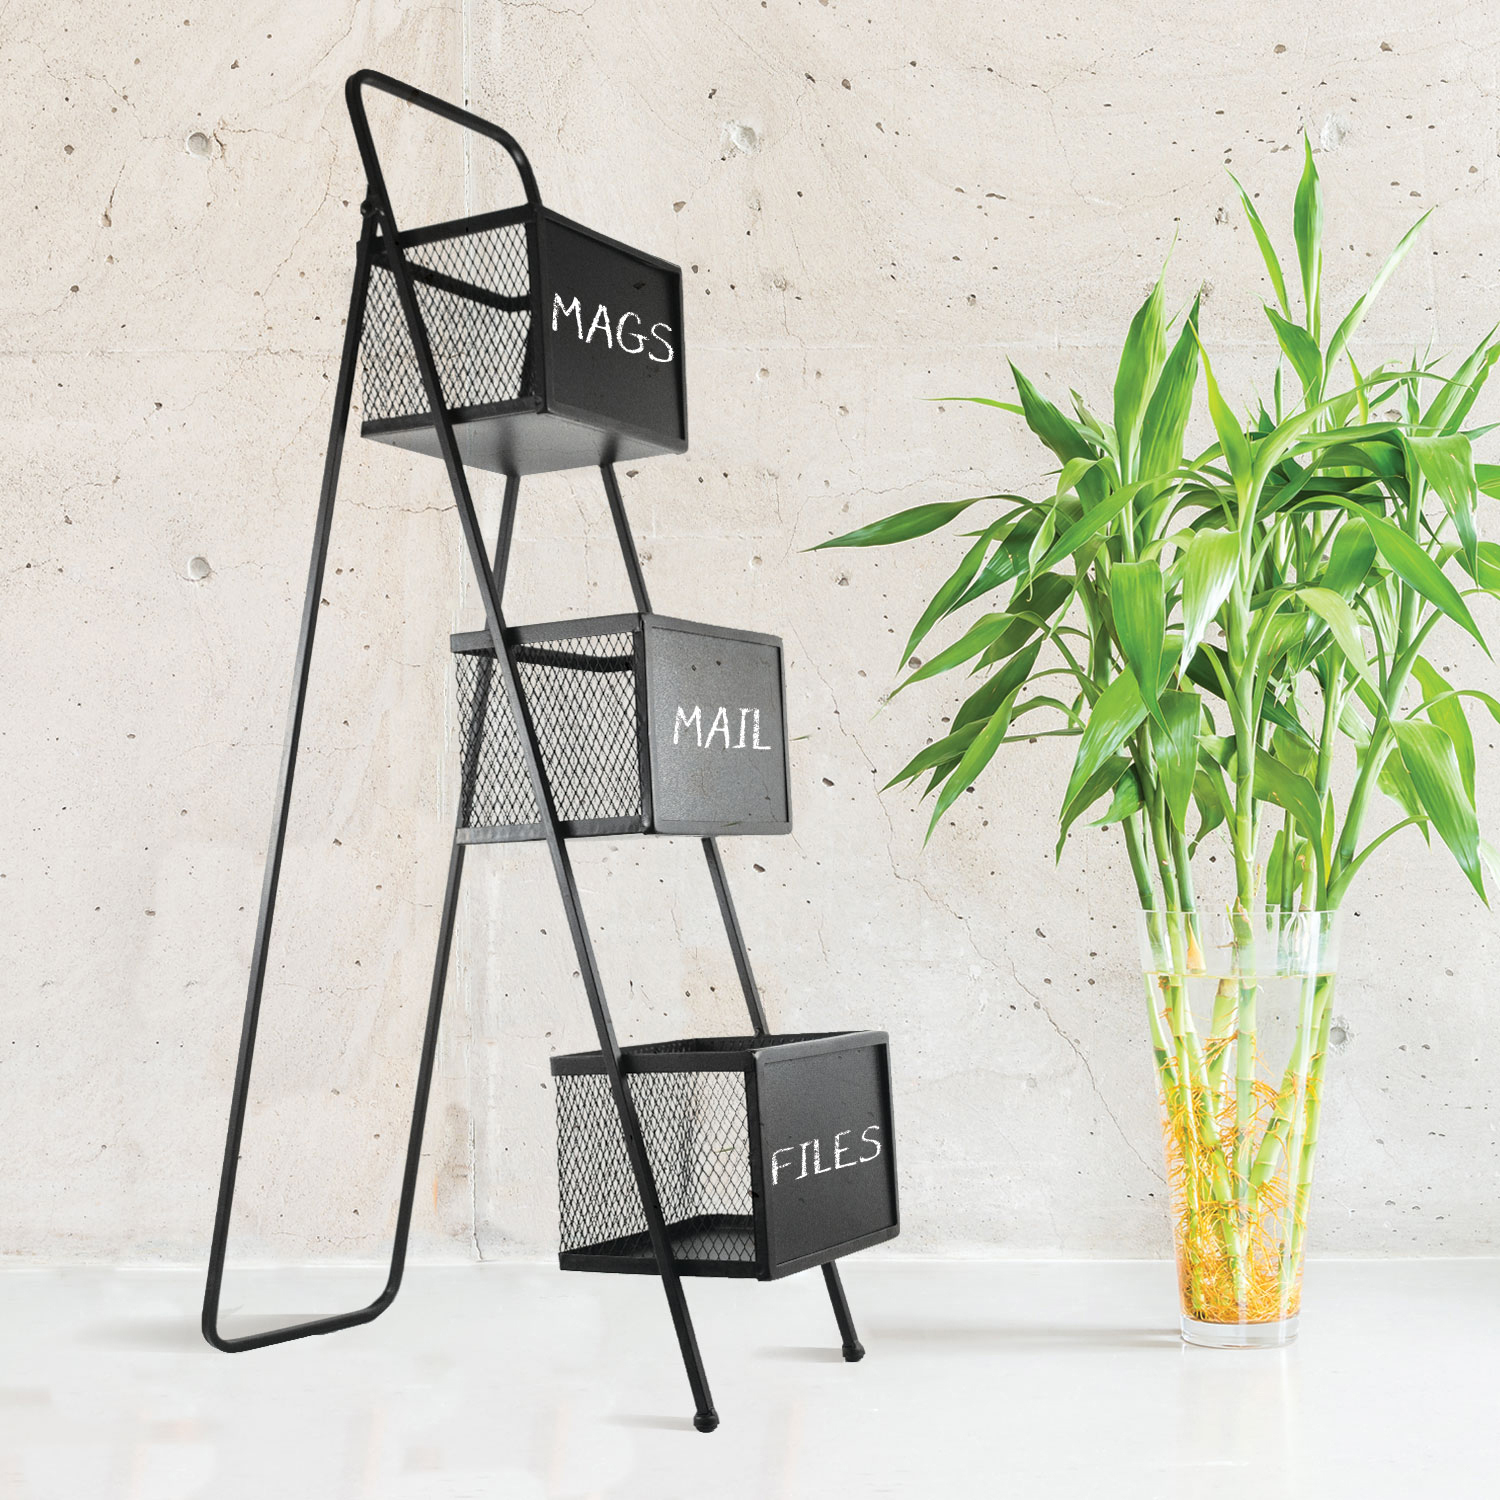 3-Tier Magazine Rack with Chalkboards